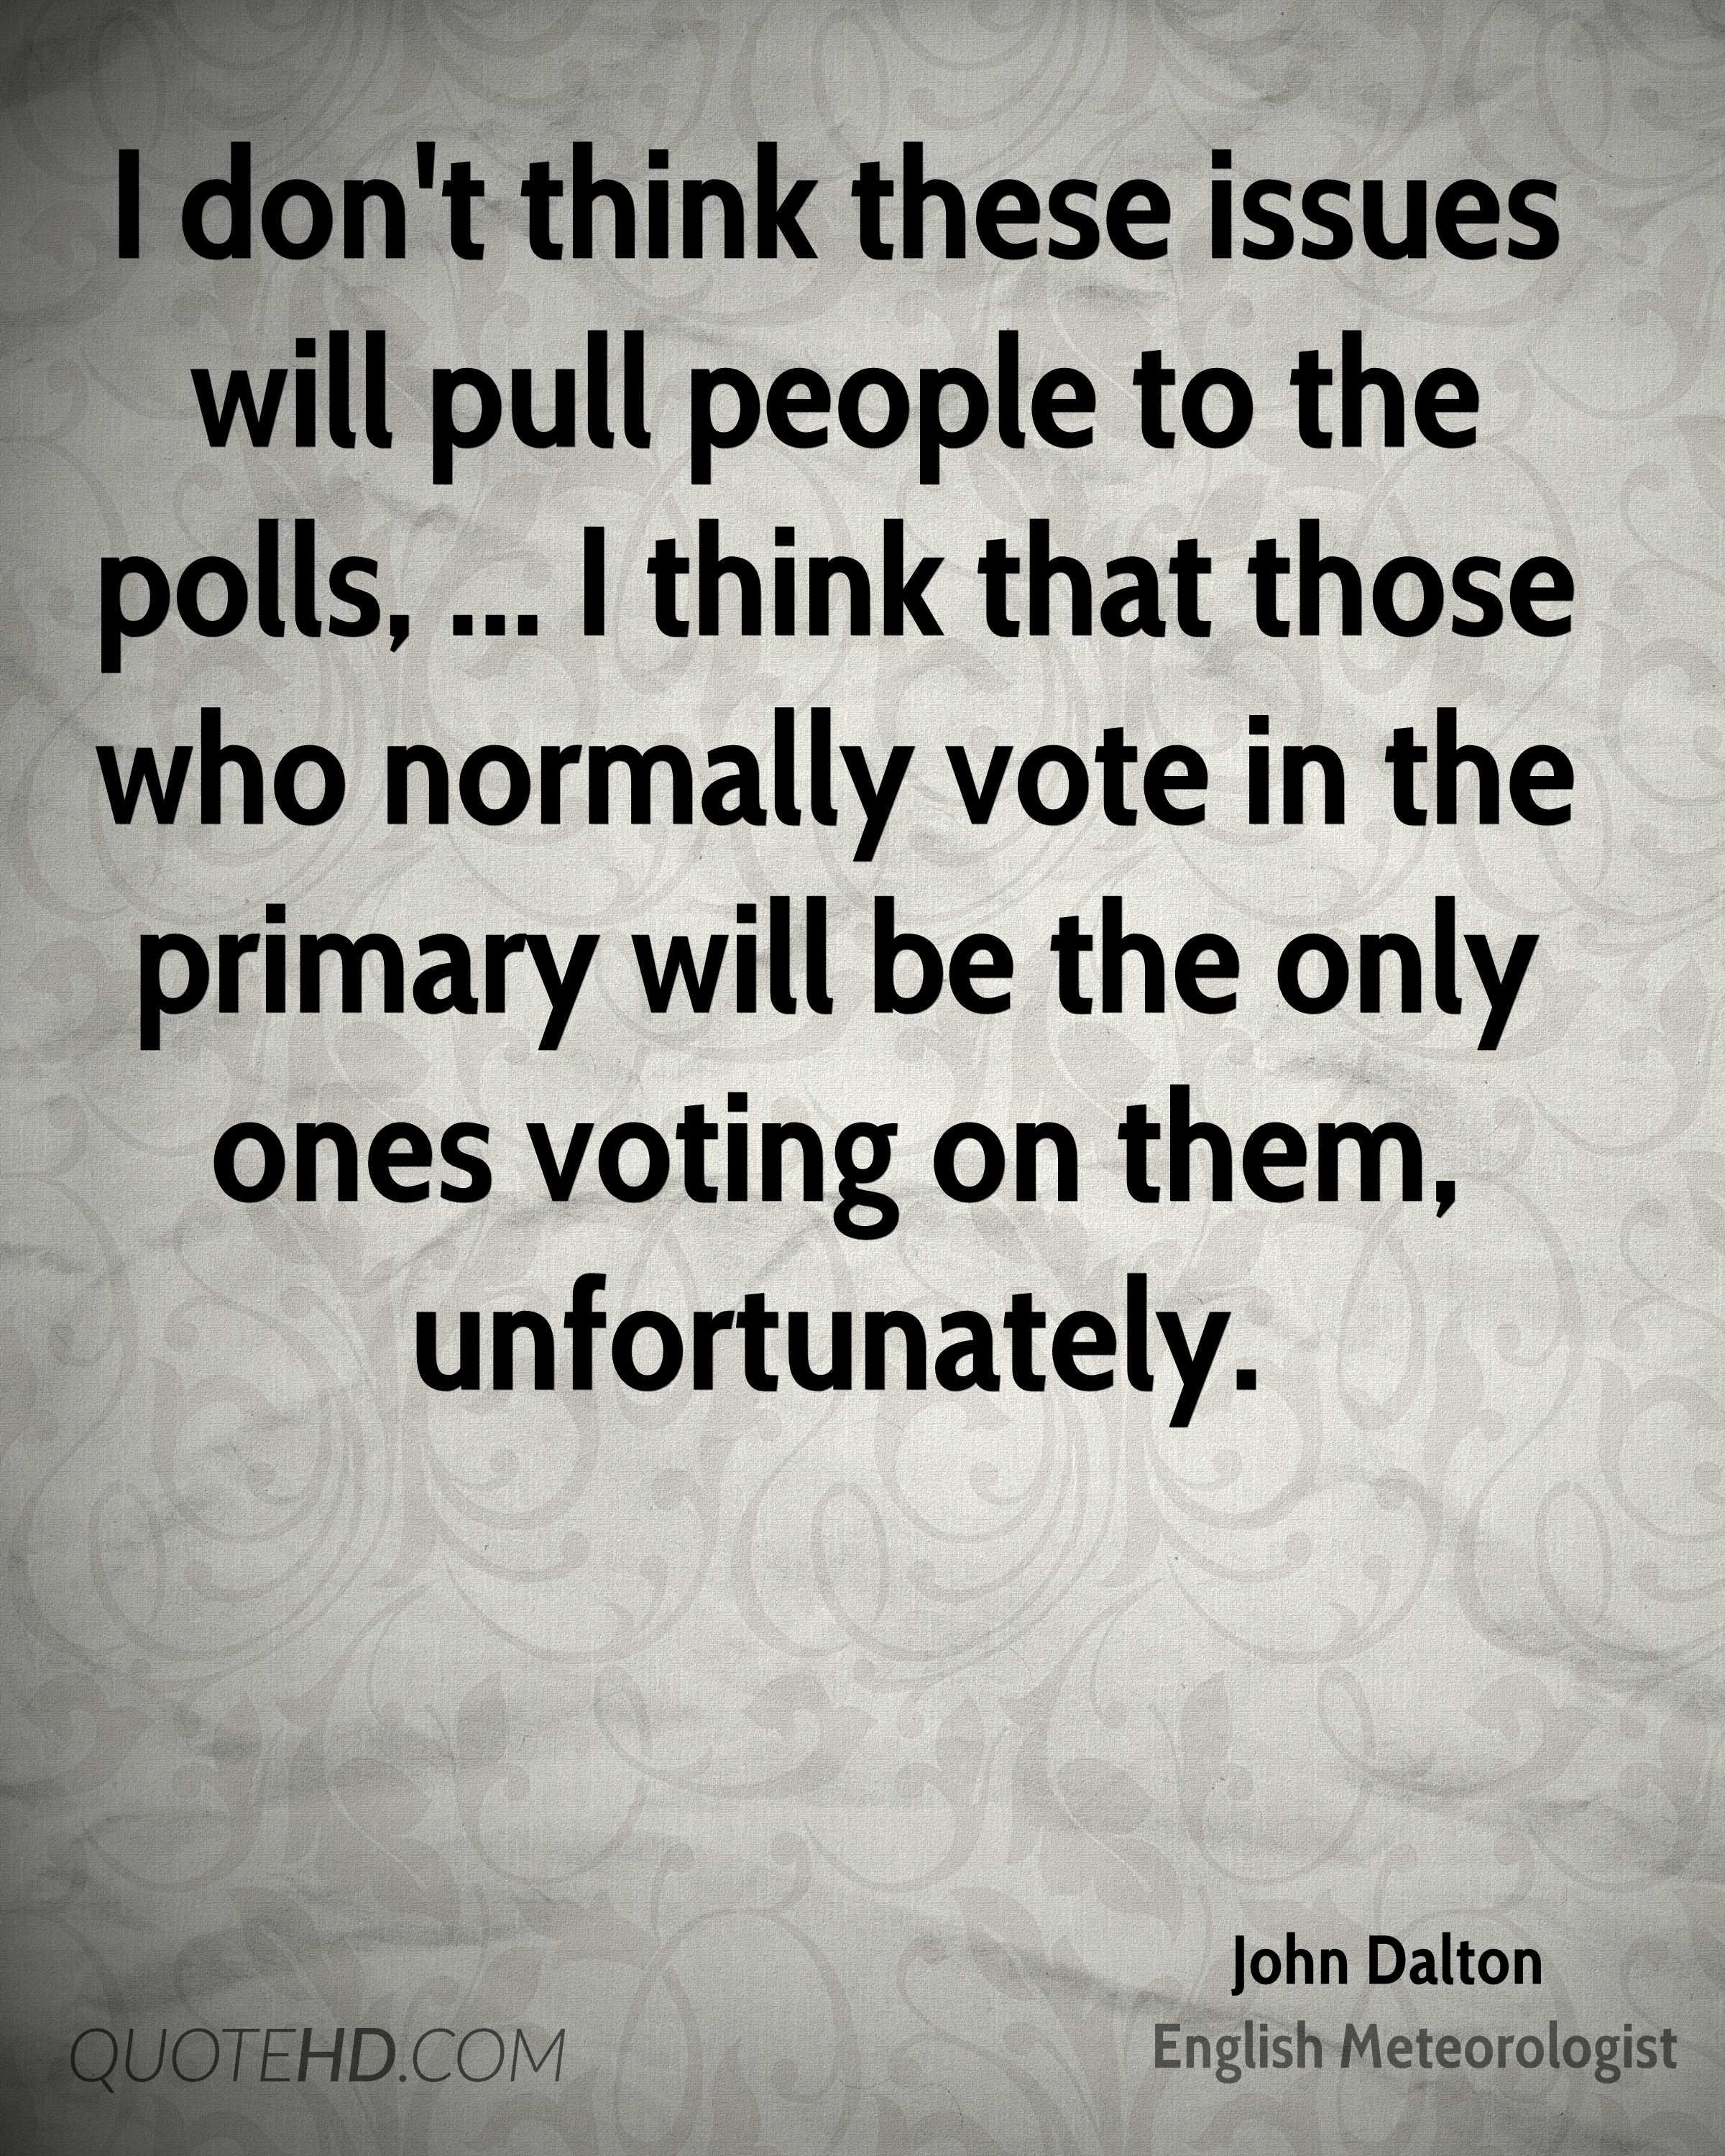 I don't think these issues will pull people to the polls, ... I think that those who normally vote in the primary will be the only ones voting on them, unfortunately.